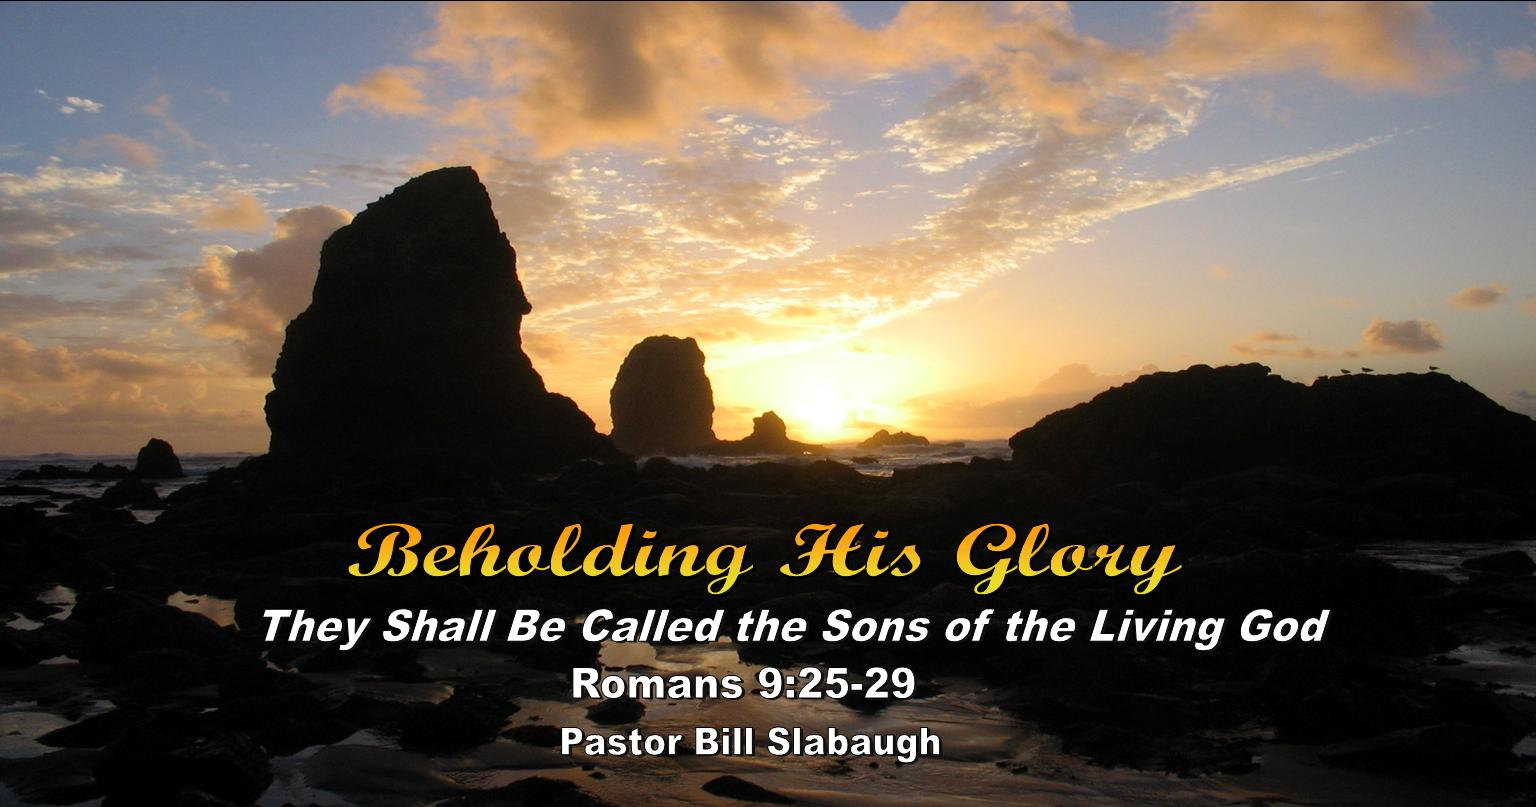 Sermon Outline: Romans 9:25-29 ~ They Shall Be Called Sons of the Living God